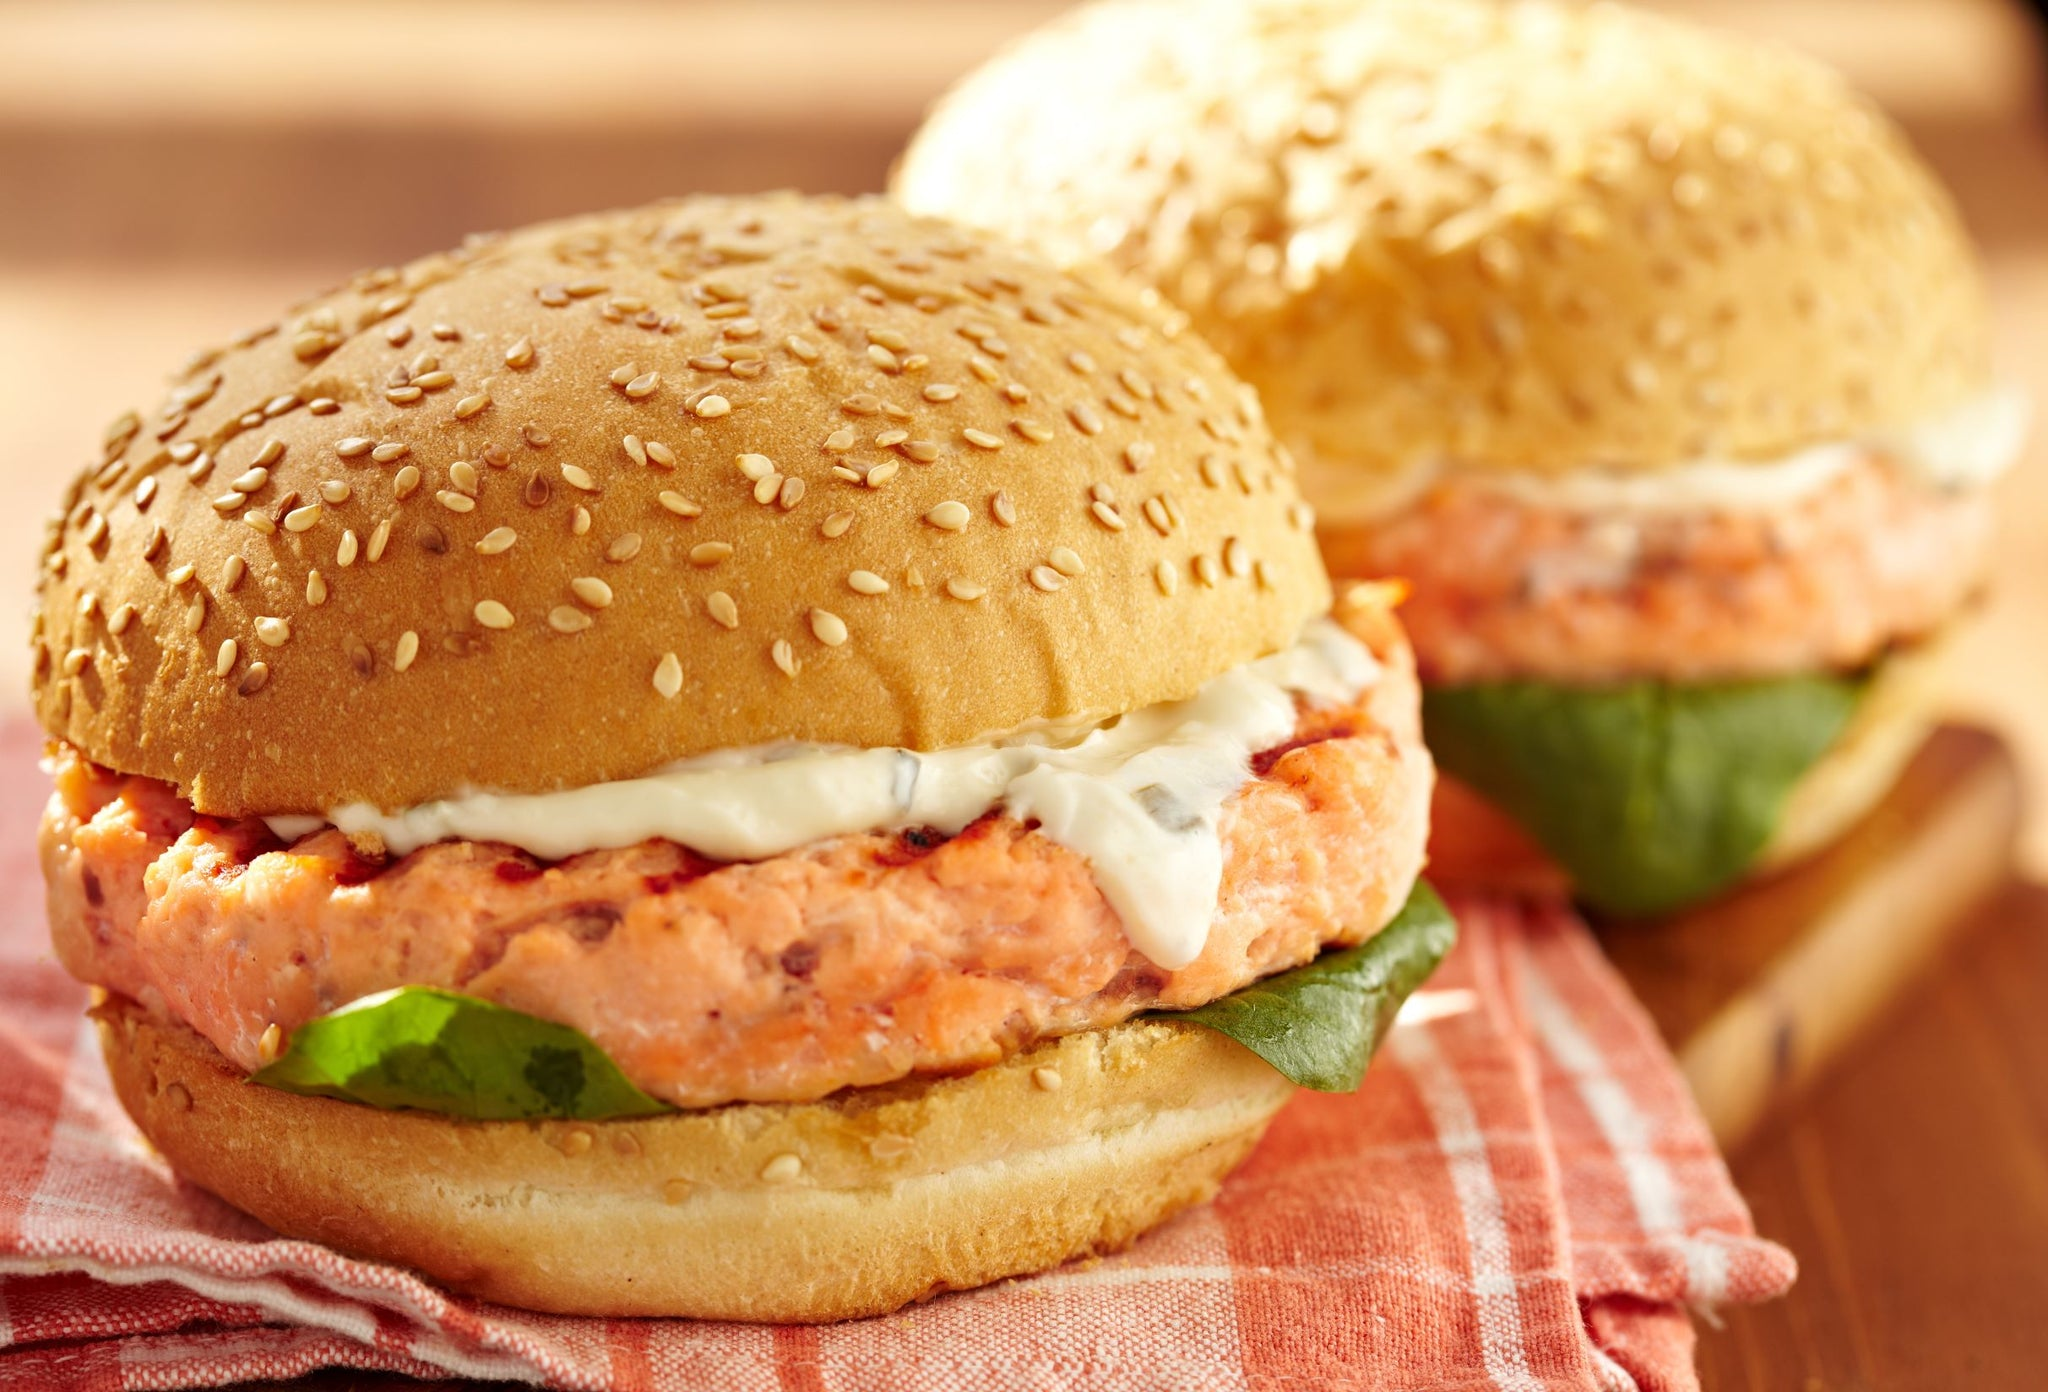 Portico Prime Individually Quick Frozen Wild Alaskan Salmon Burger 3.2 oz - 10 lb - 1 Pack [$10.10/lb]